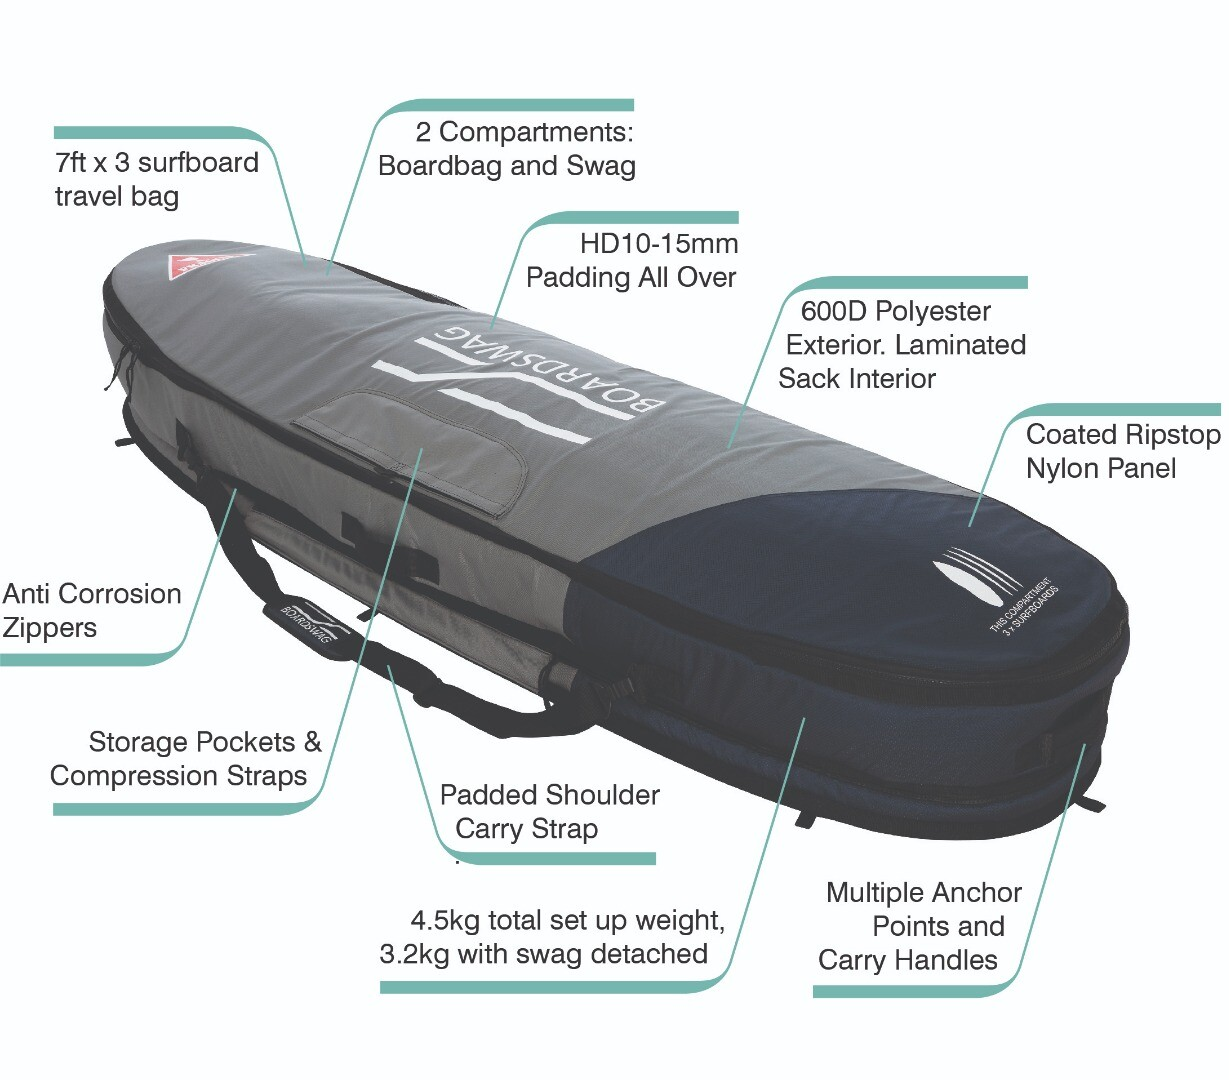 Boardswag board bag features